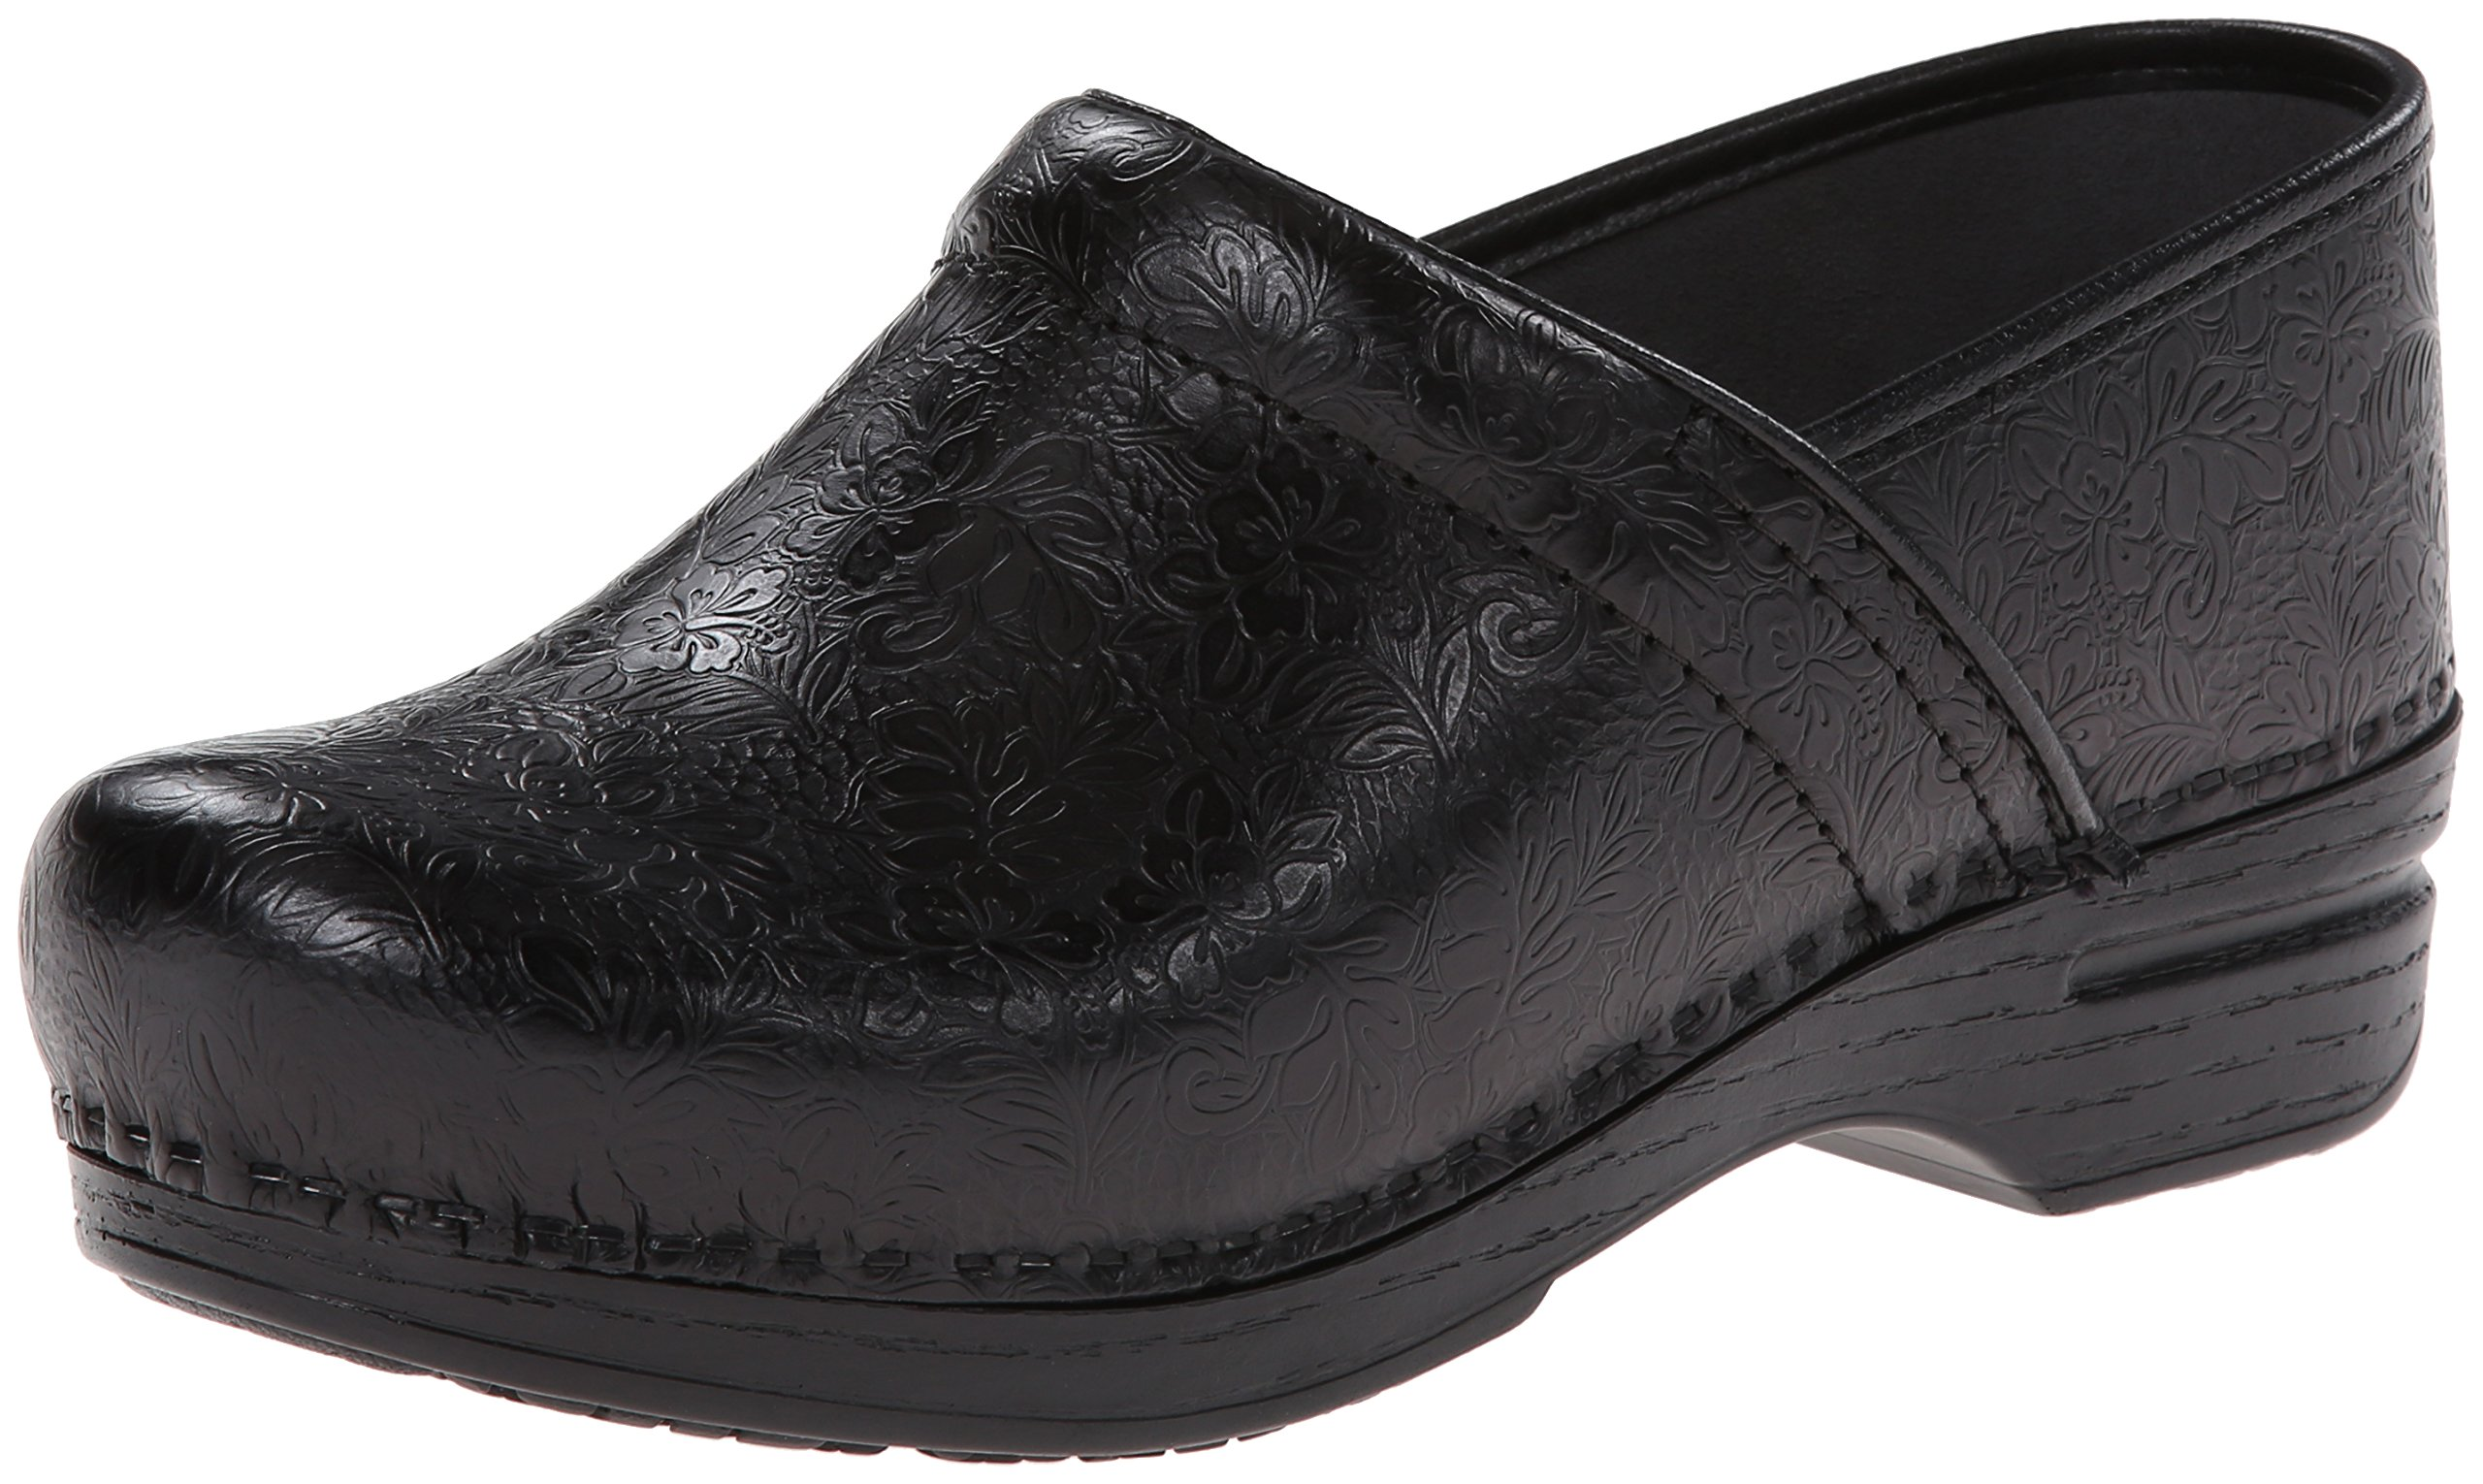 Dansko Women's Pro XP Mule,Black Floral Tooled,39 EU/8.5-9 M US by Dansko (Image #1)